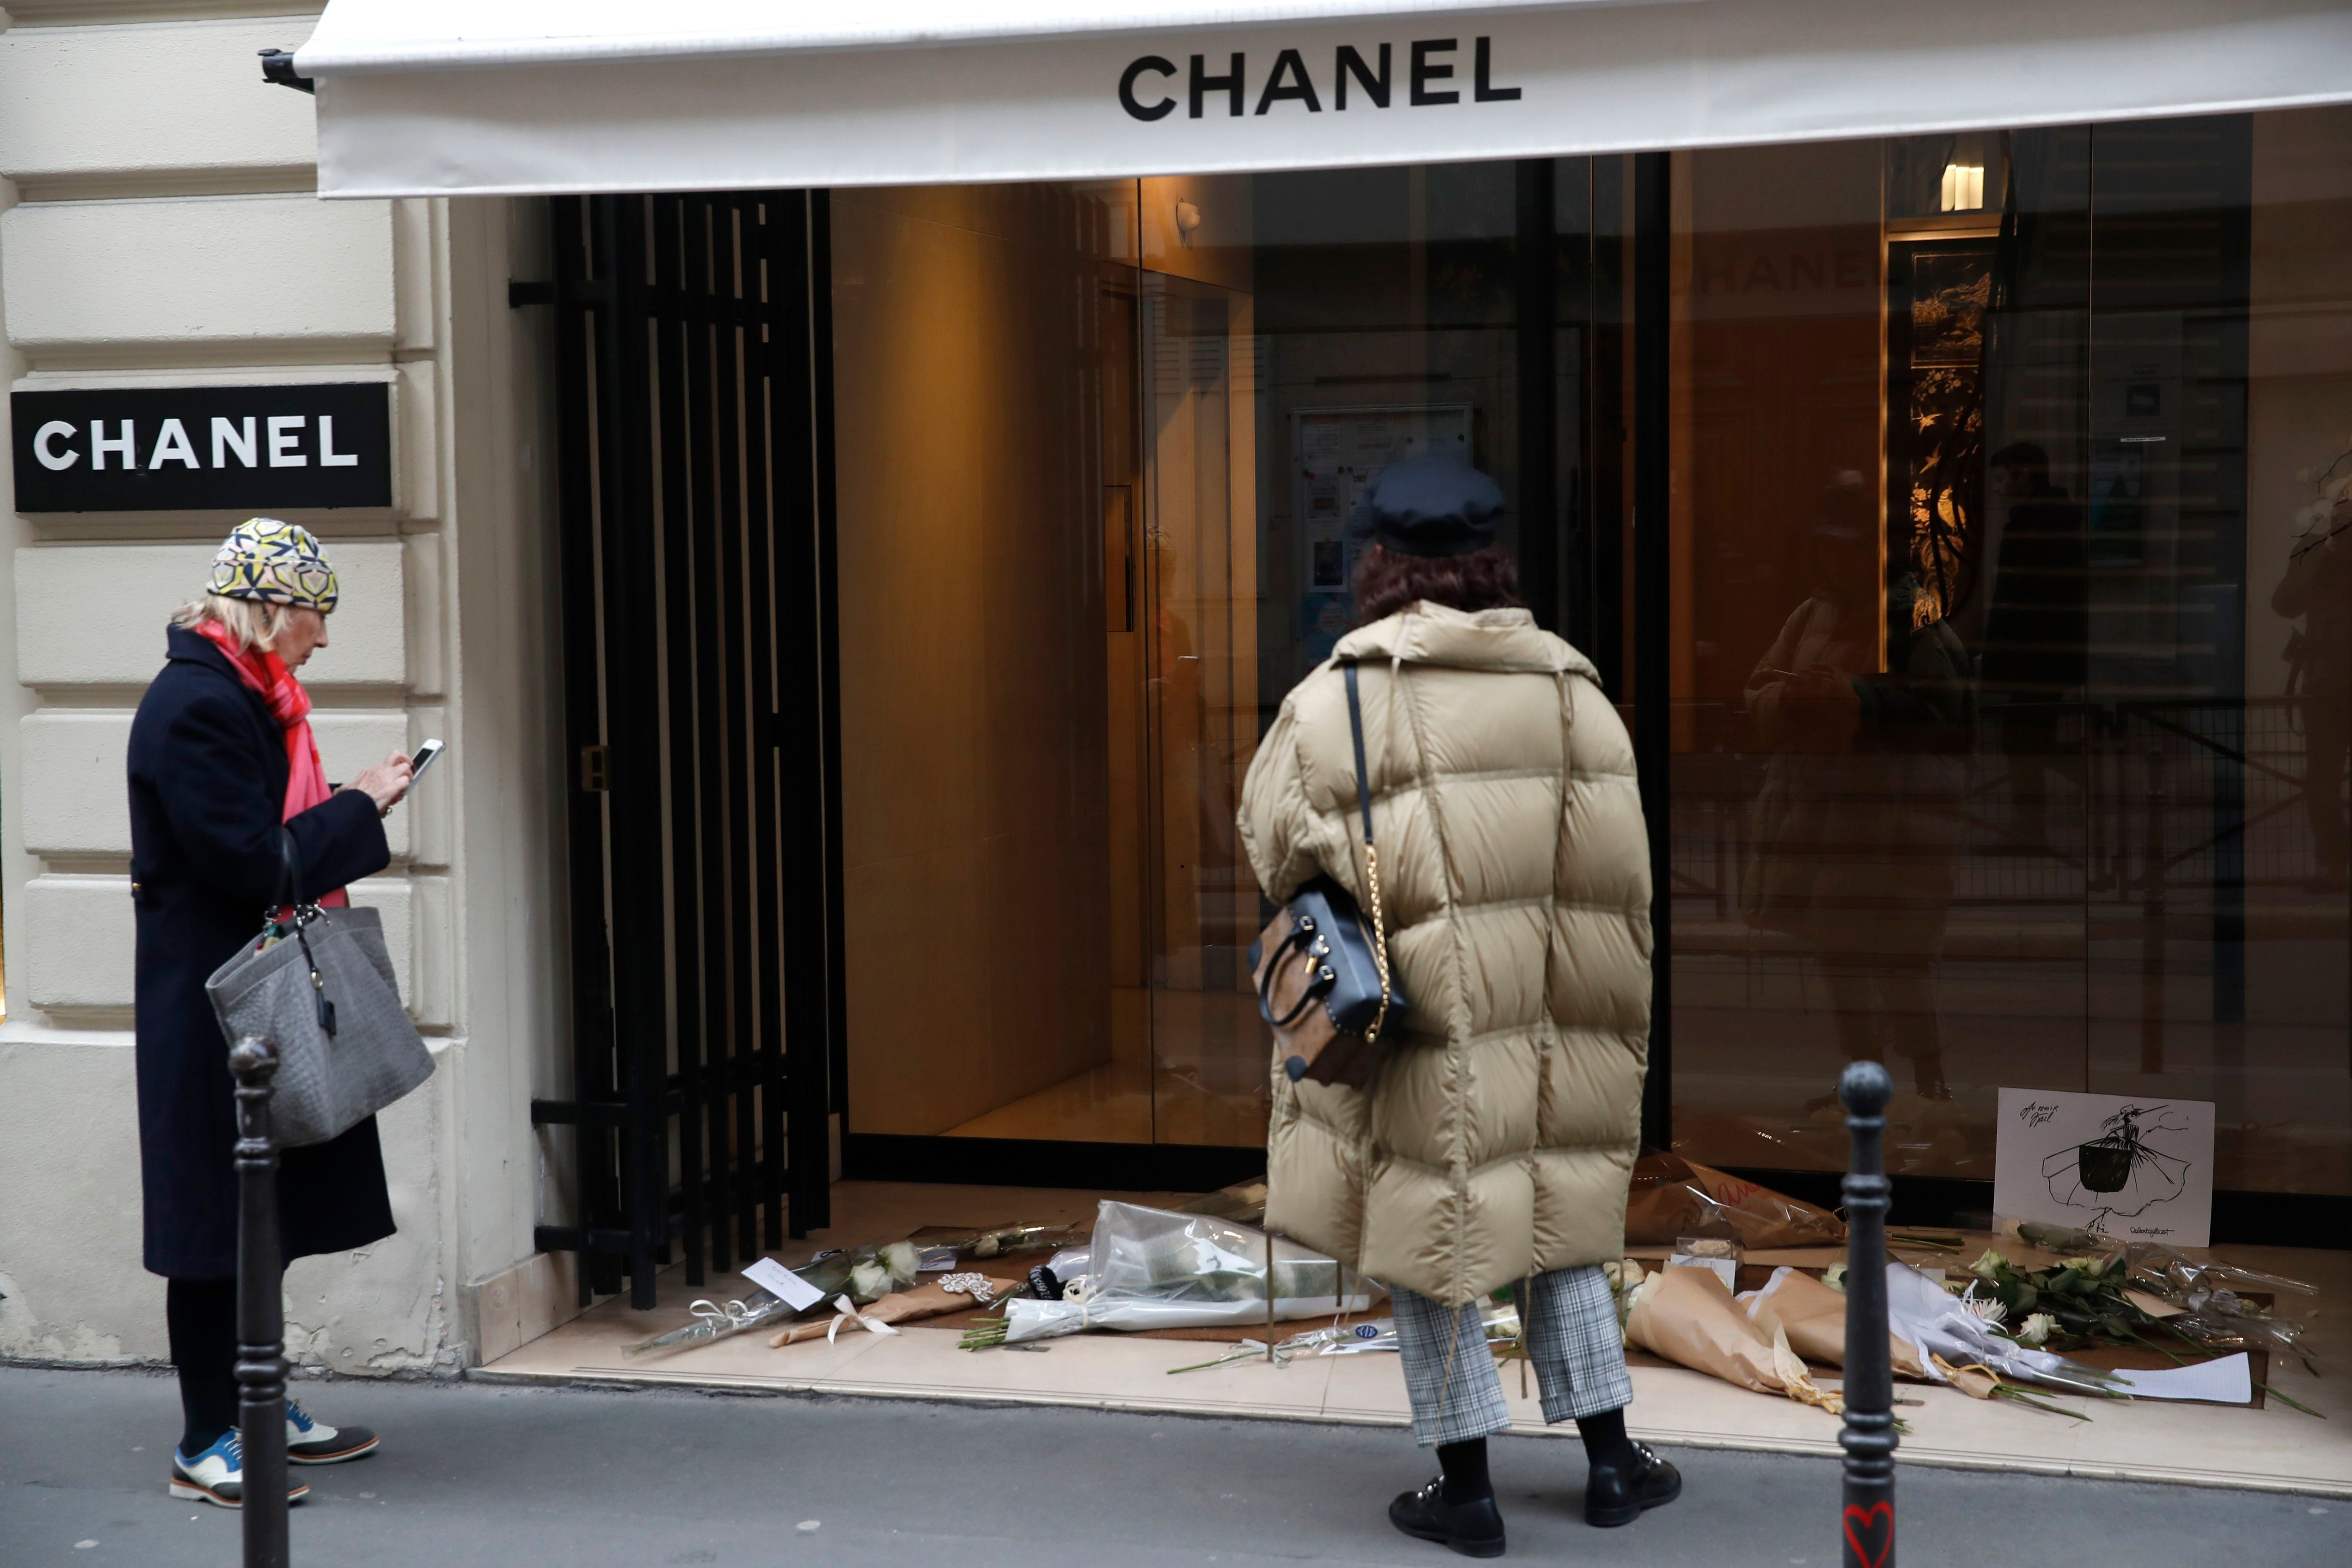 Women watch flowers at the entrance of Chanel headquarters in Paris, Wednesday, Feb.20, 2019. Karl Lagerfeld, the iconic couturier whose designs at Chanel and Fendi had an unprecedented impact on the entire fashion industry, died Tuesday in Paris, prompting an outpouring of love and admiration for the man whose career spanned six decadesObit Lagerfeld, Paris, France - 20 Feb 2019